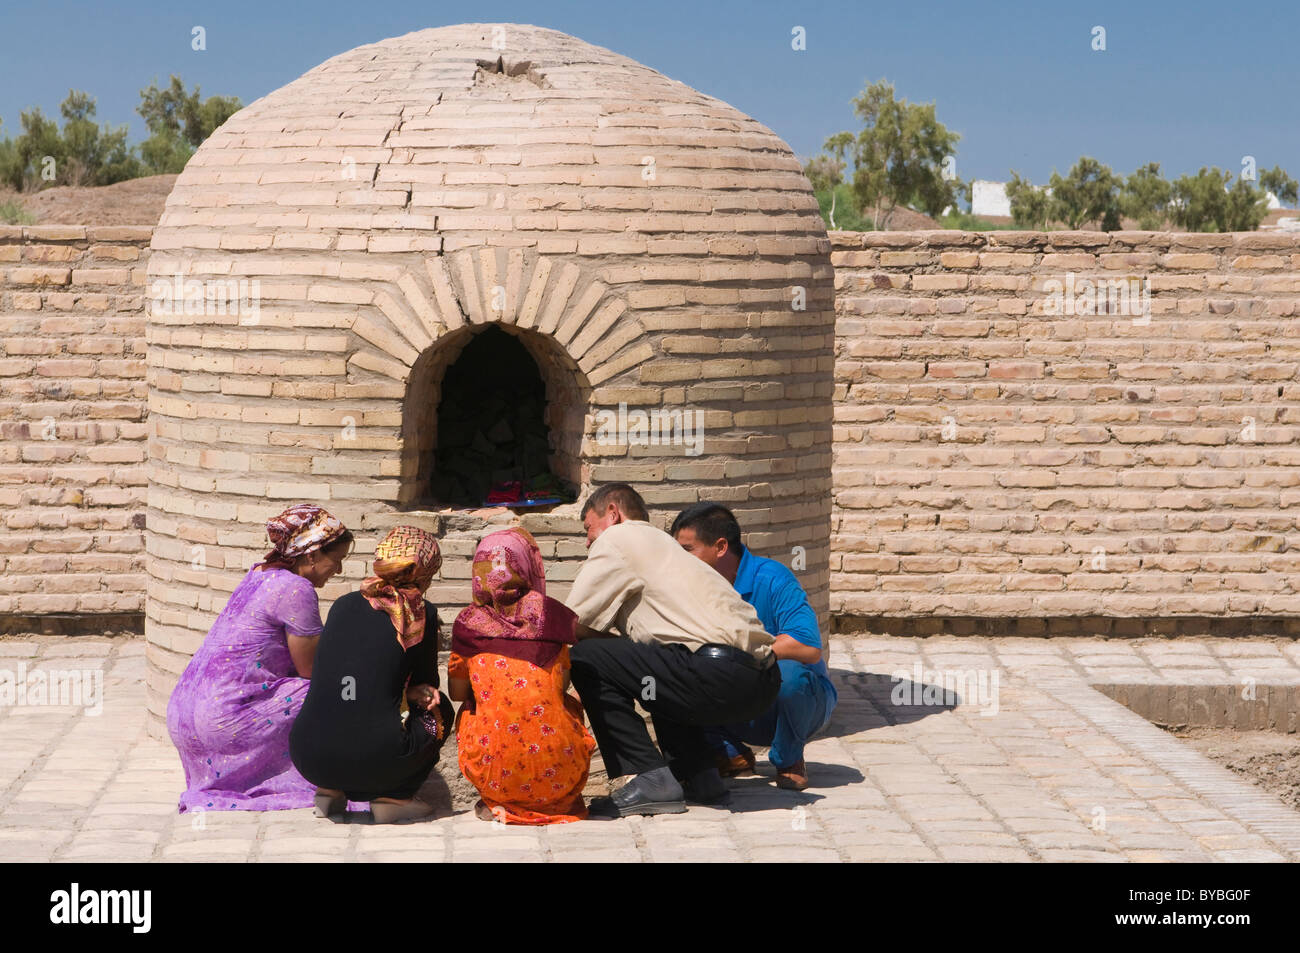 Praying muslims, Konye-Urgench, Turkmenistan, Central Asia - Stock Image